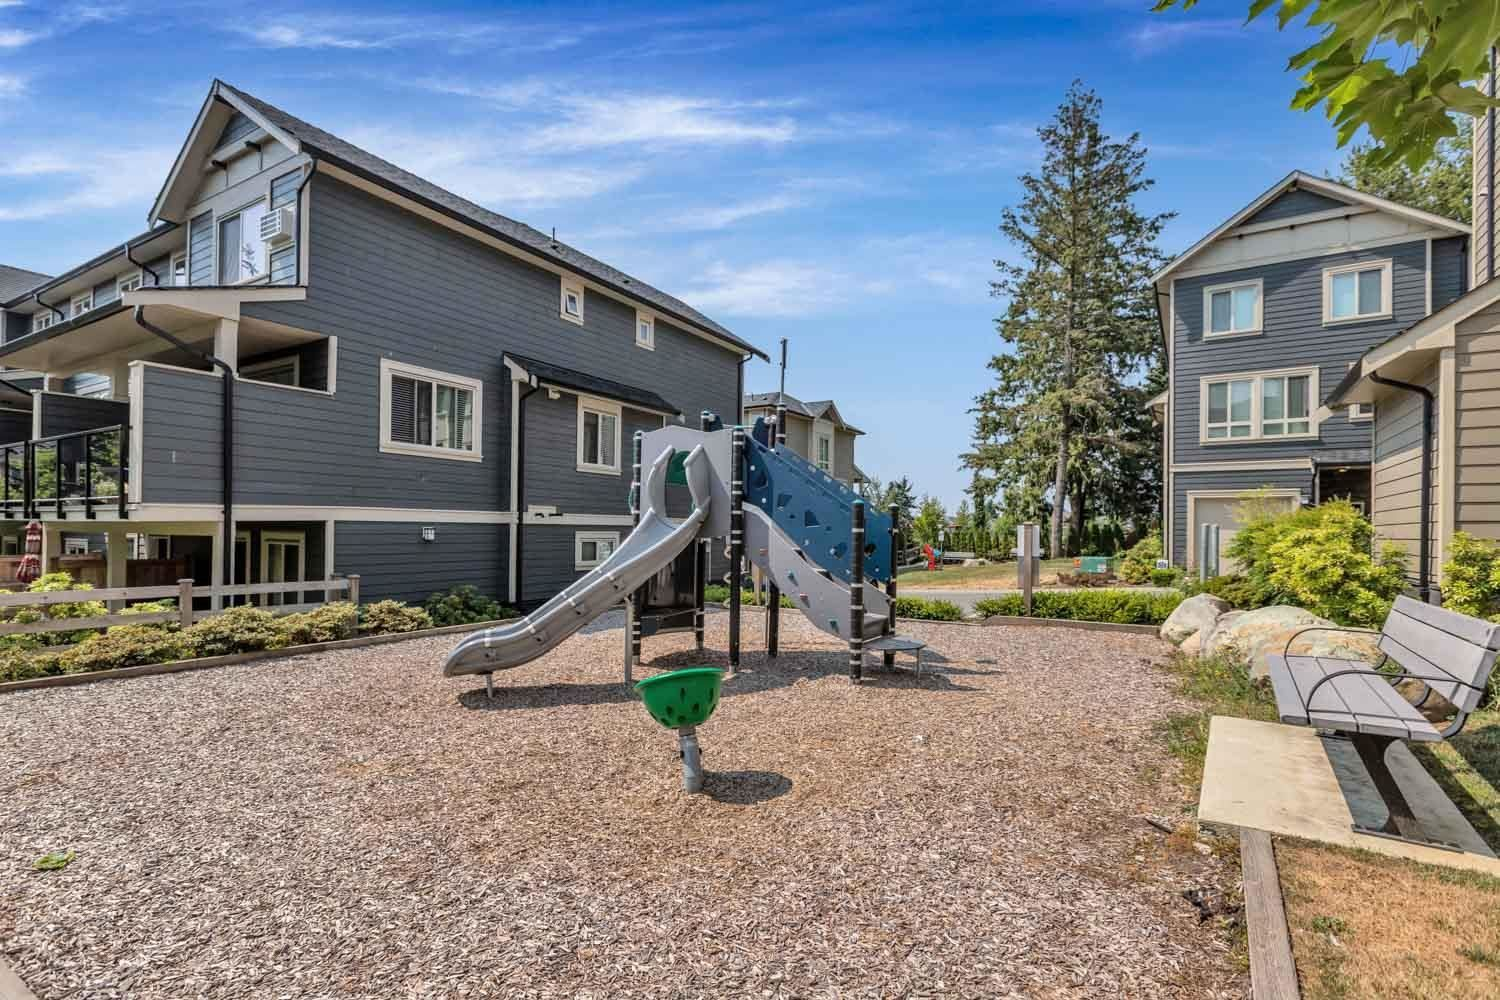 Photo 36: Photos: 98 19913 70 Avenue in Langley: Willoughby Heights Townhouse for sale : MLS®# R2606437